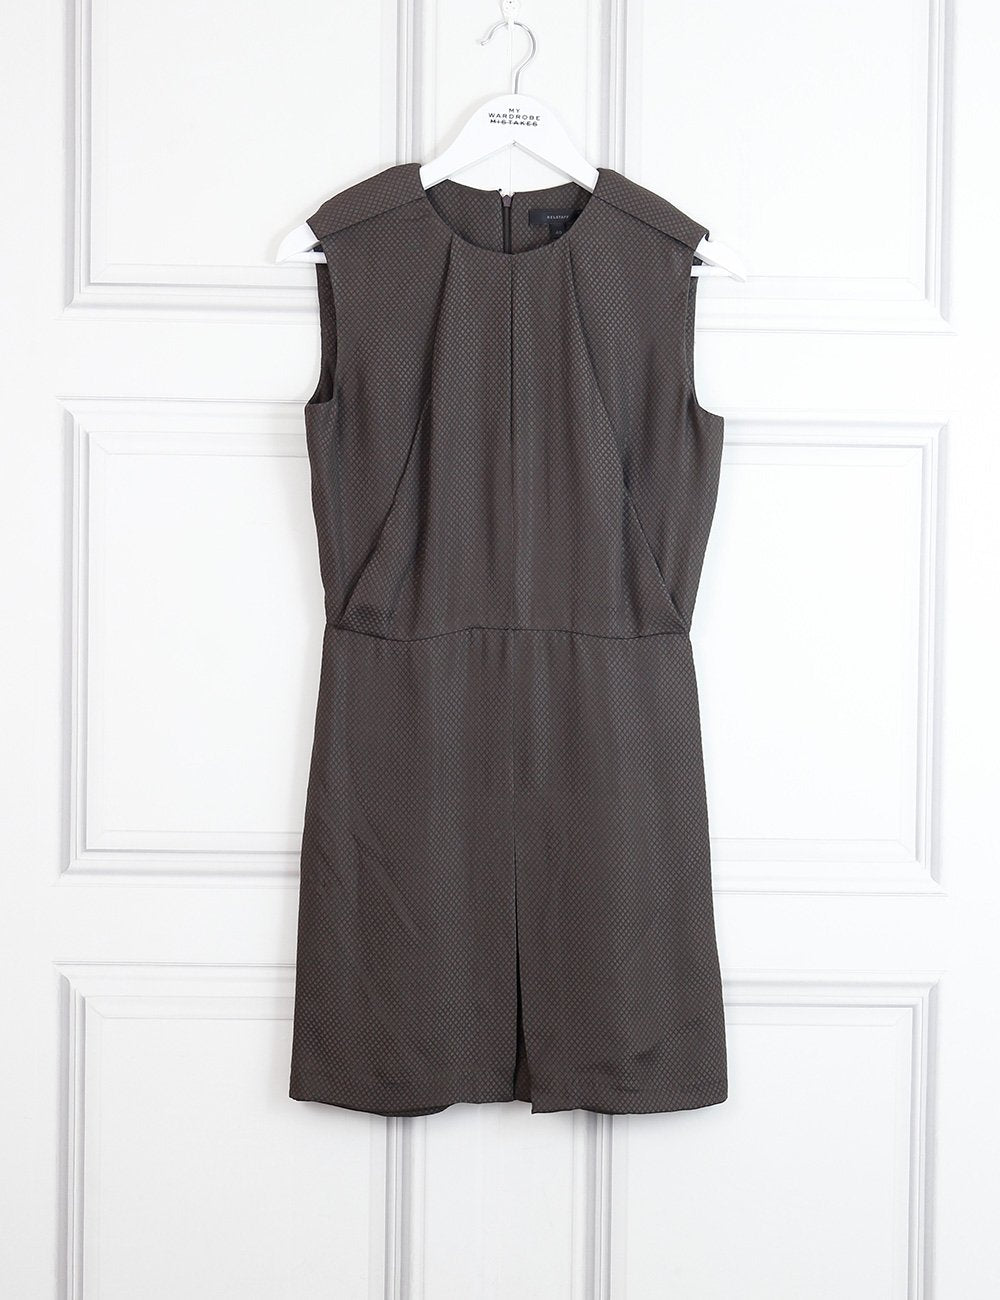 Belstaff brown sleeveless dress with detail on the shoulders 8Uk- My Wardrobe Mistakes